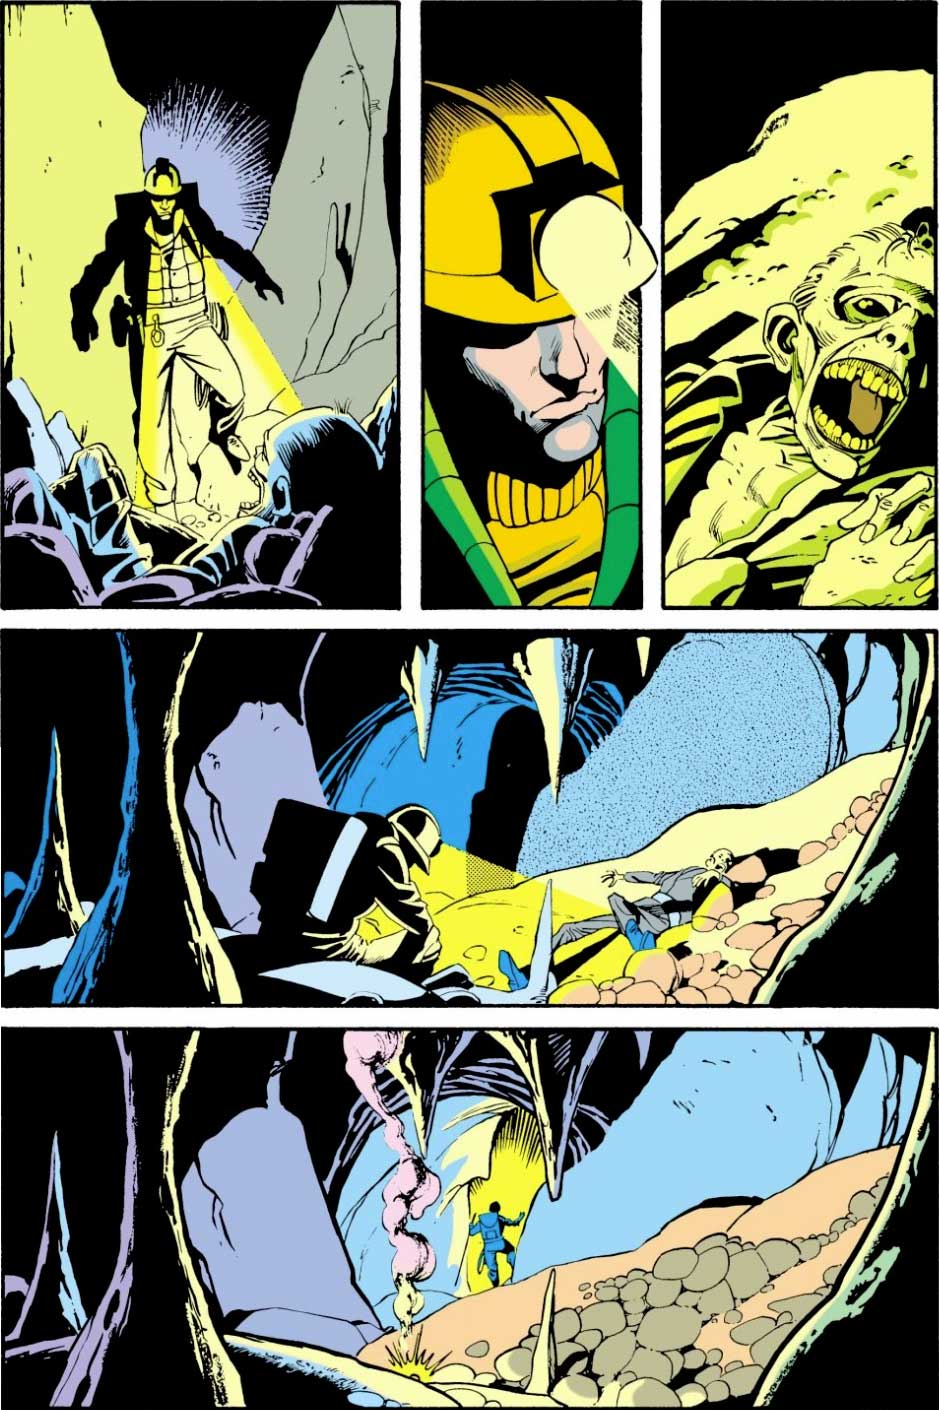 Justice League International #24 Keith Giffen, JM DeMatteis, Ty Templeton and Joe Rubinstein